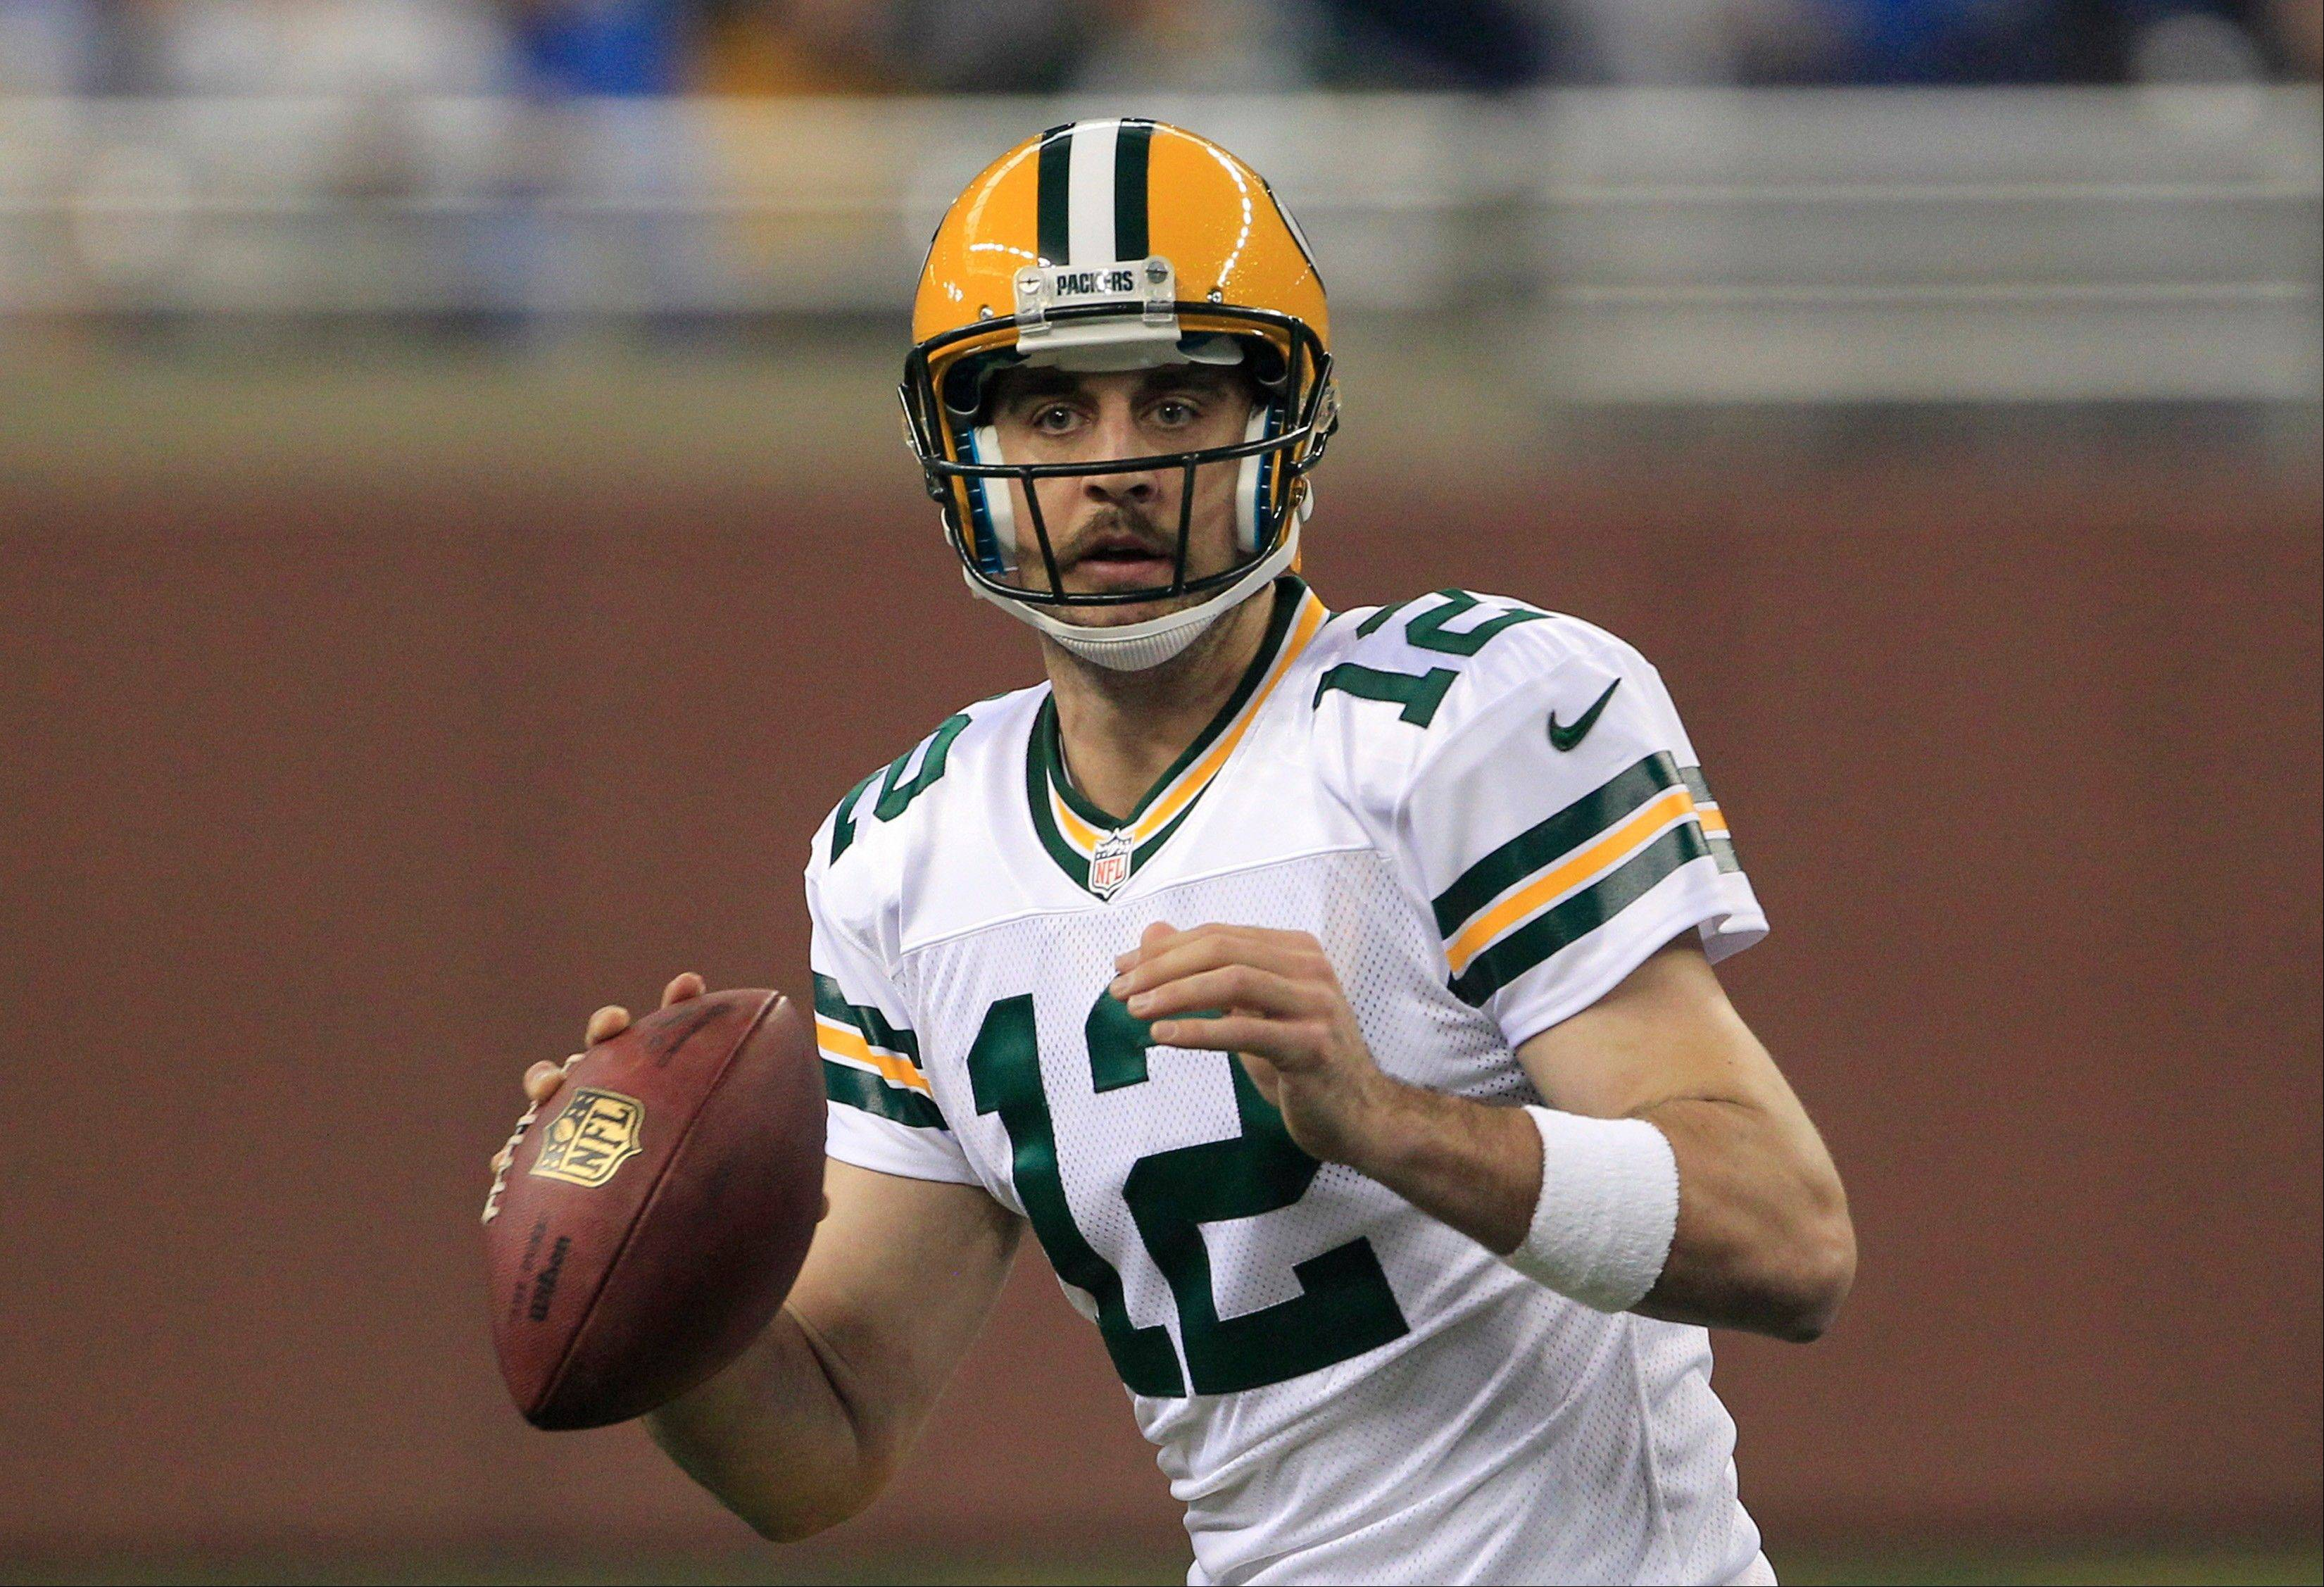 Aaron Rodgers is 4-0 in his last four games against the Bears with 12 TD passes, just 2 interceptions and an impressive passer rating of 117.2.